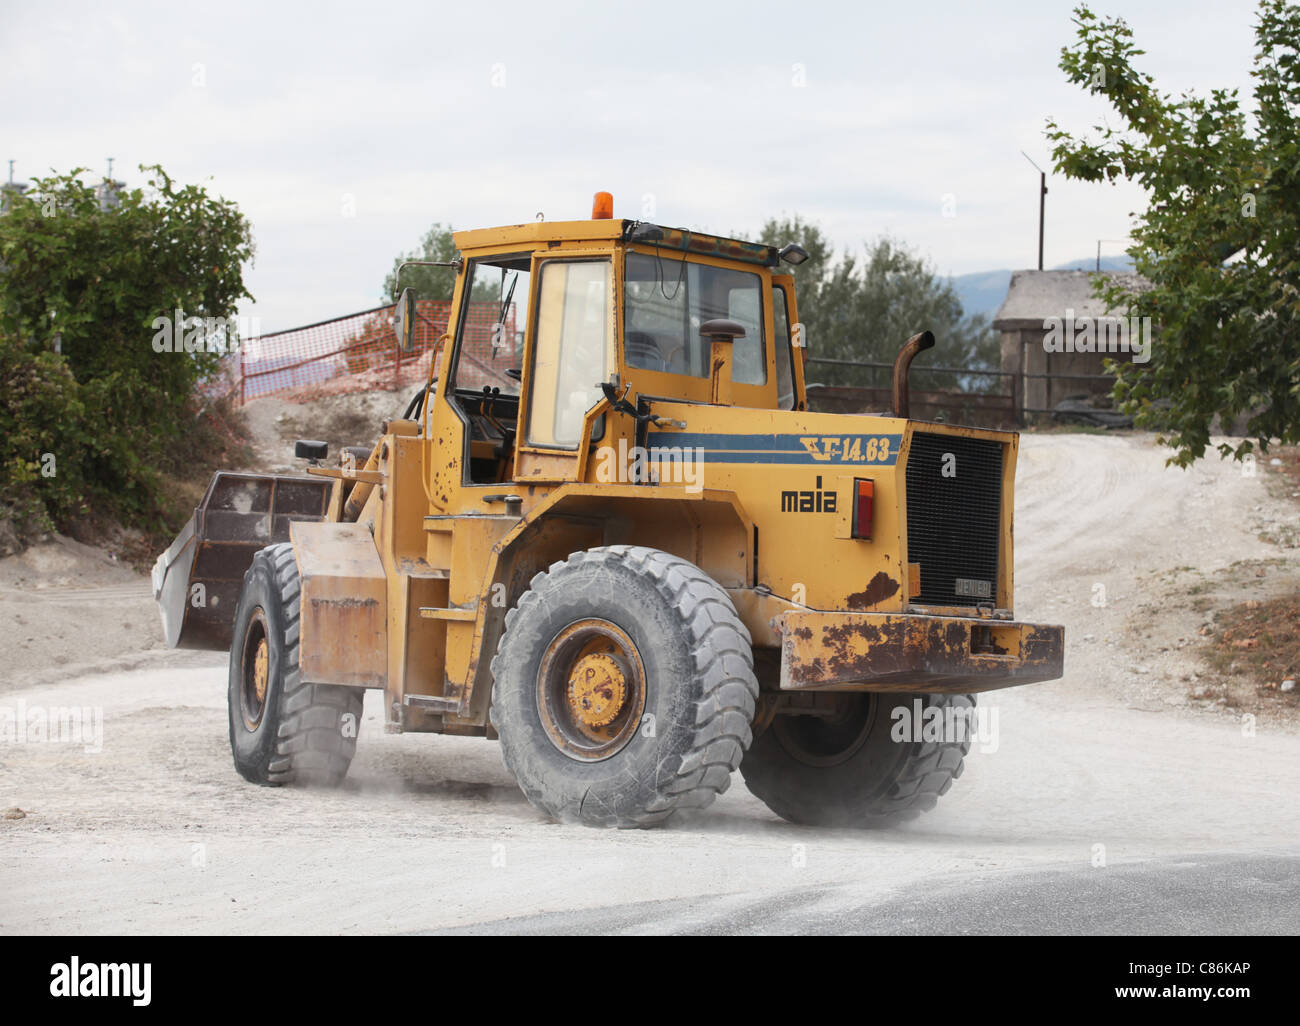 hgv tractor - Stock Image